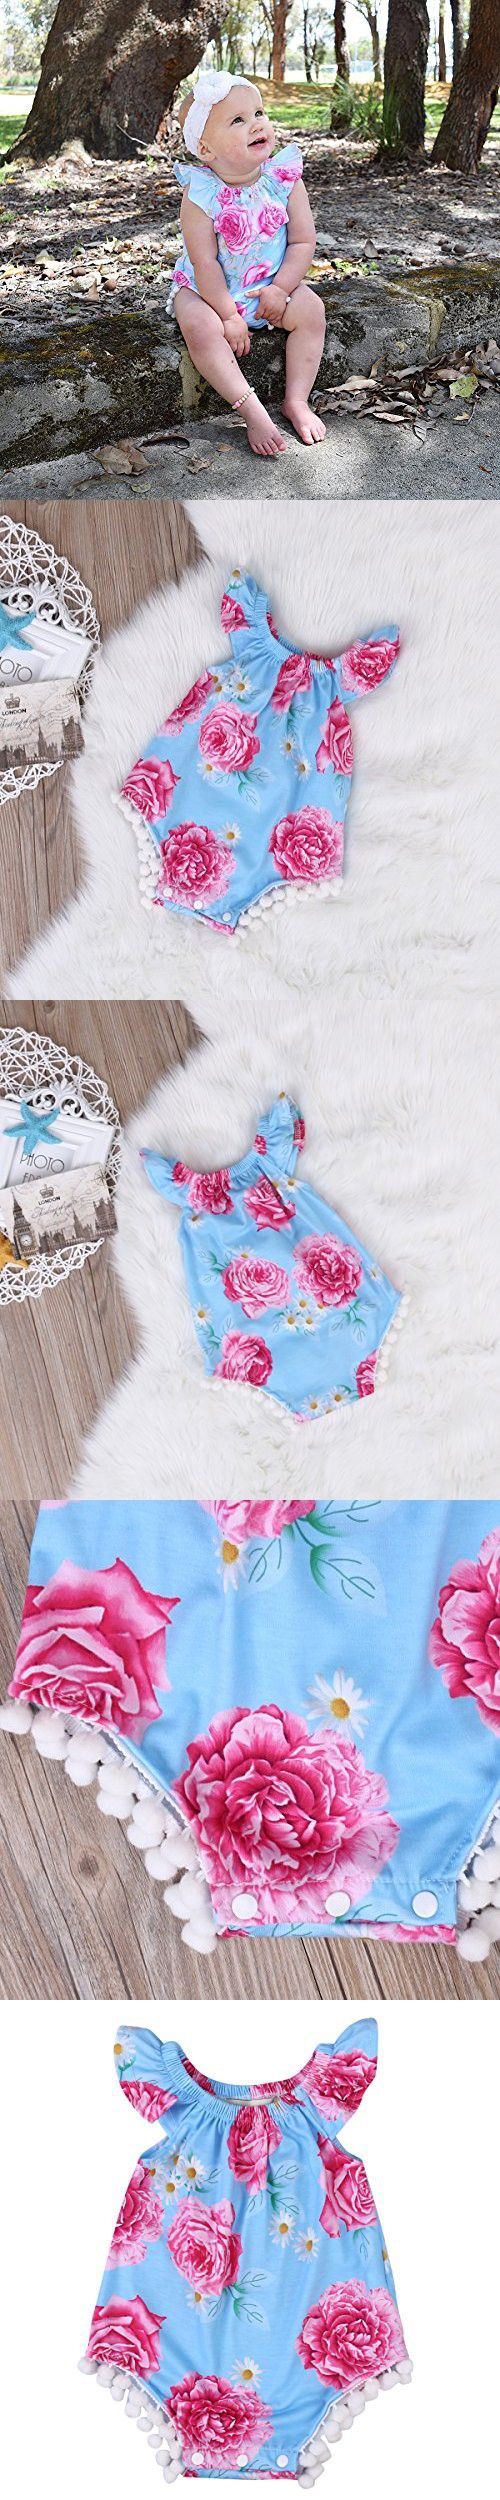 Newborn Baby Girl Clothes Floral Romper Sleeveless Infant Jumpsuit Outfit (0-6 Months)